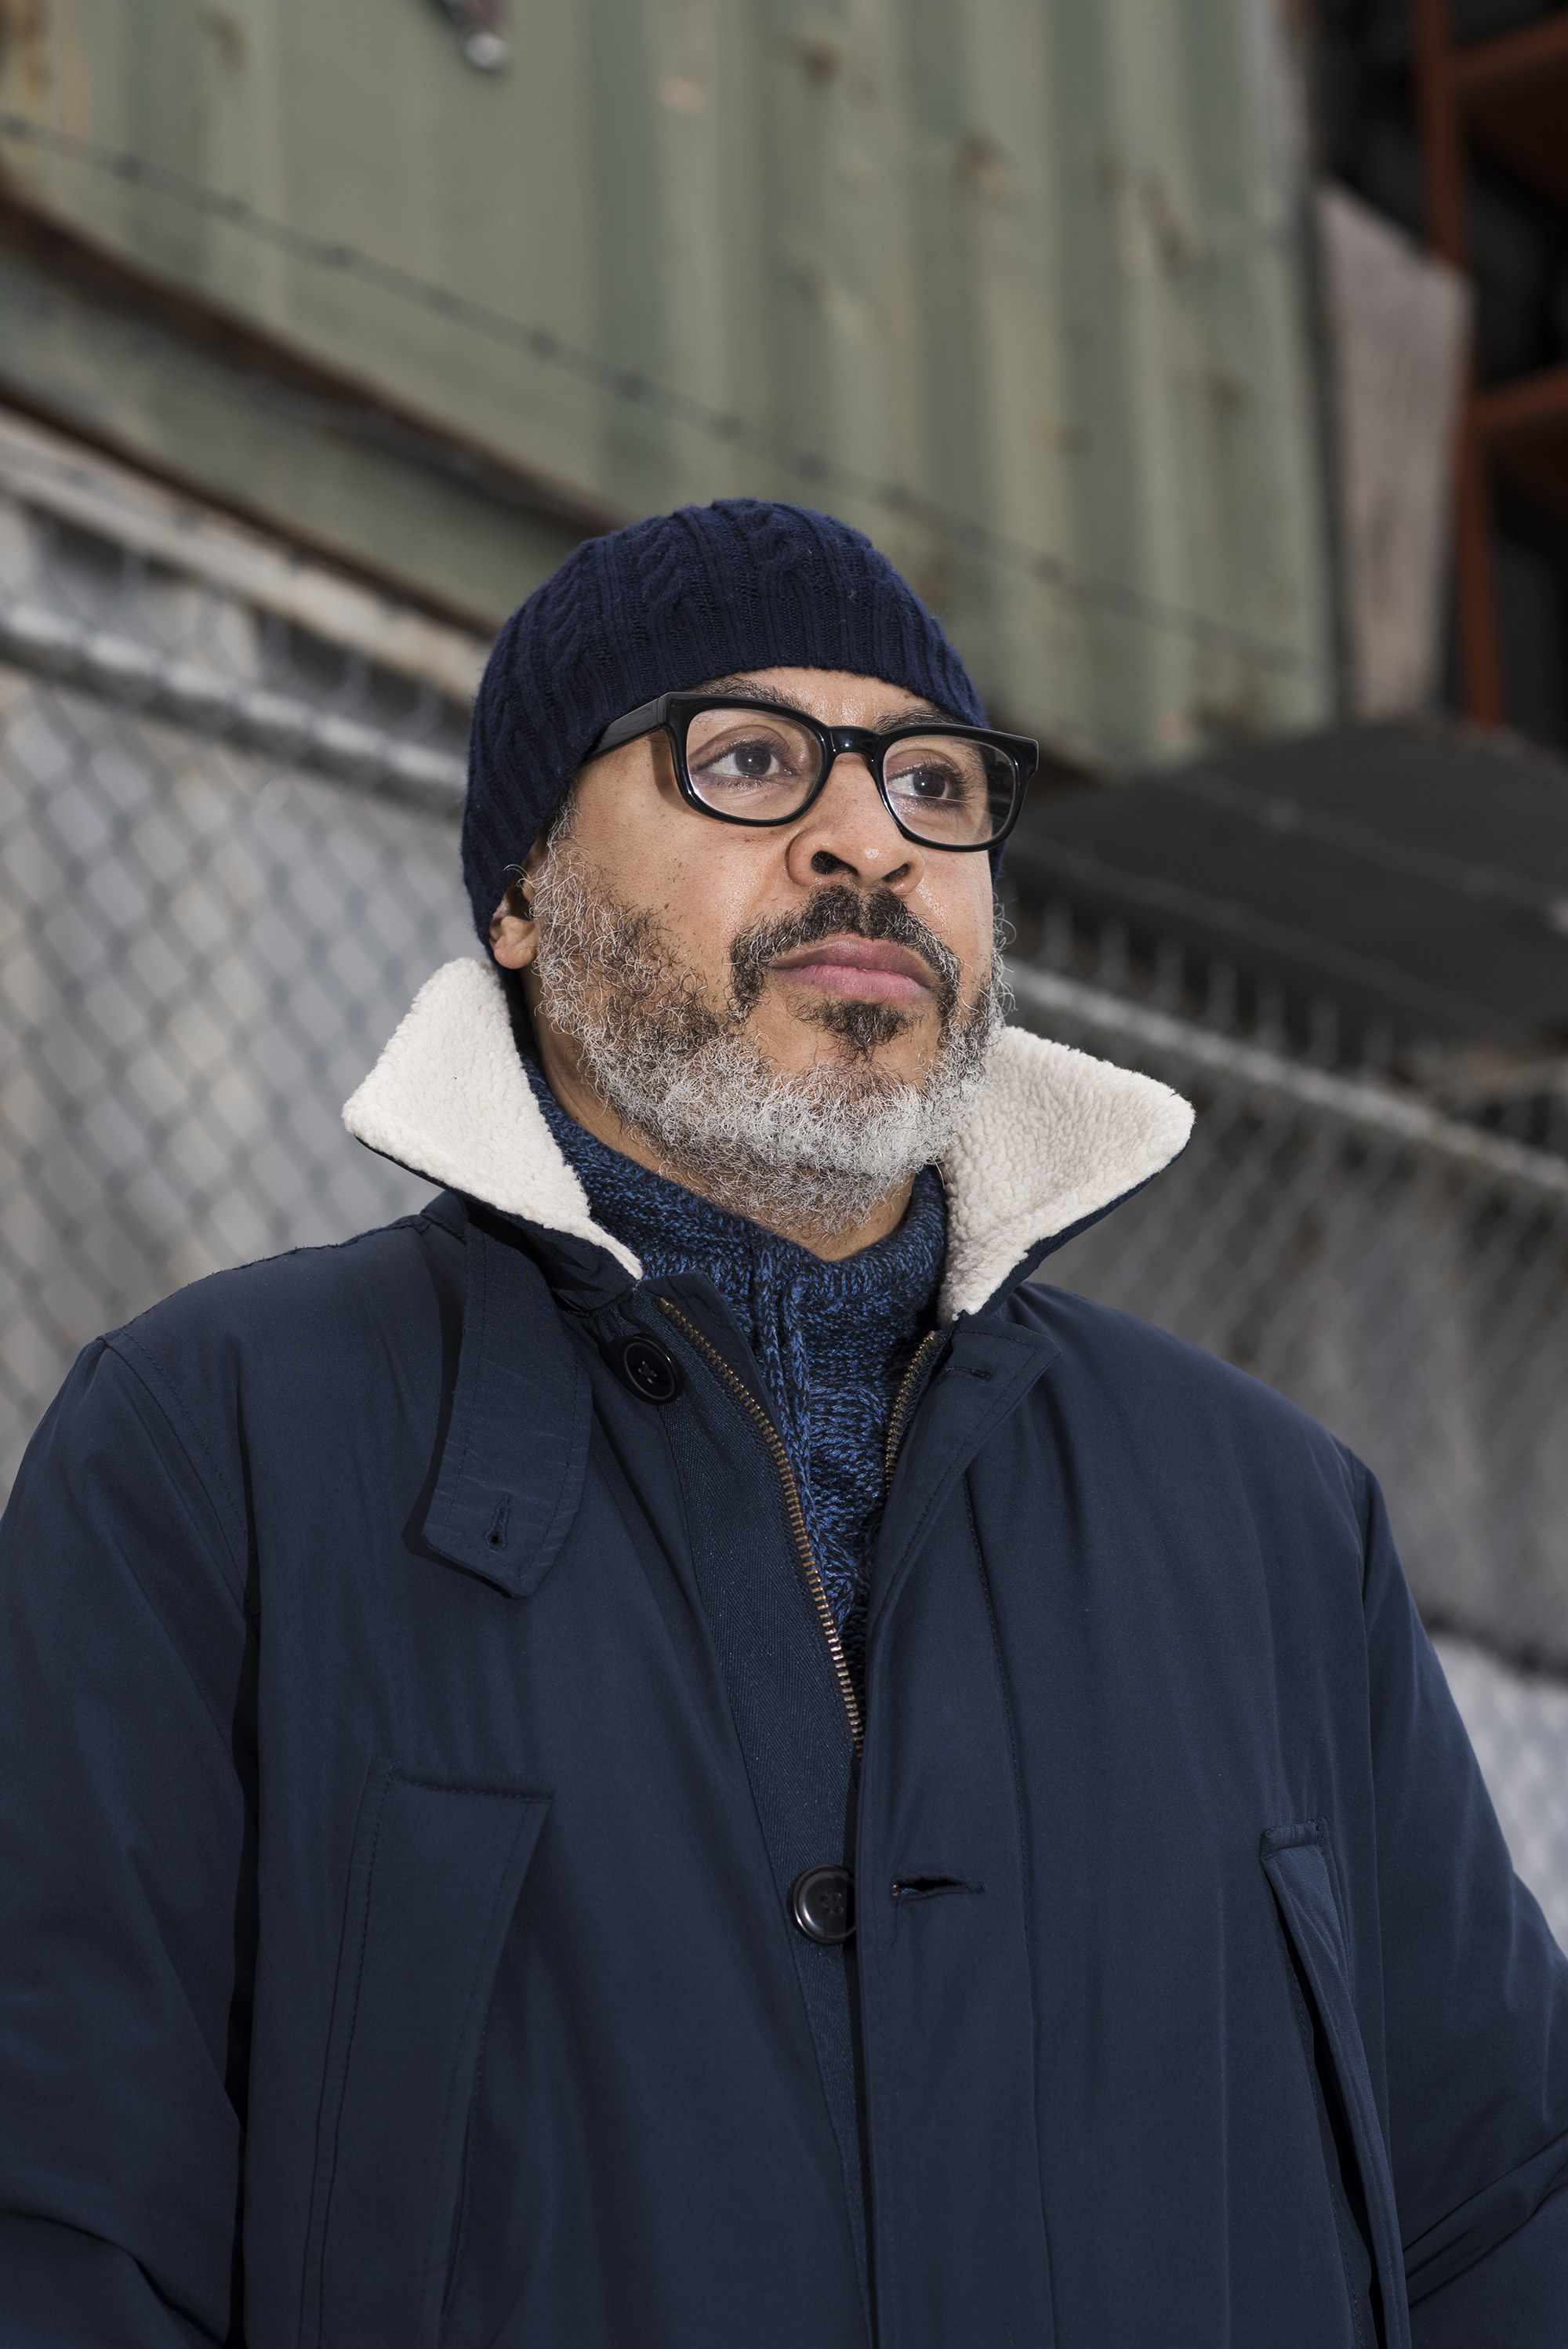 A man with glasses in a jacket looks off past the camera